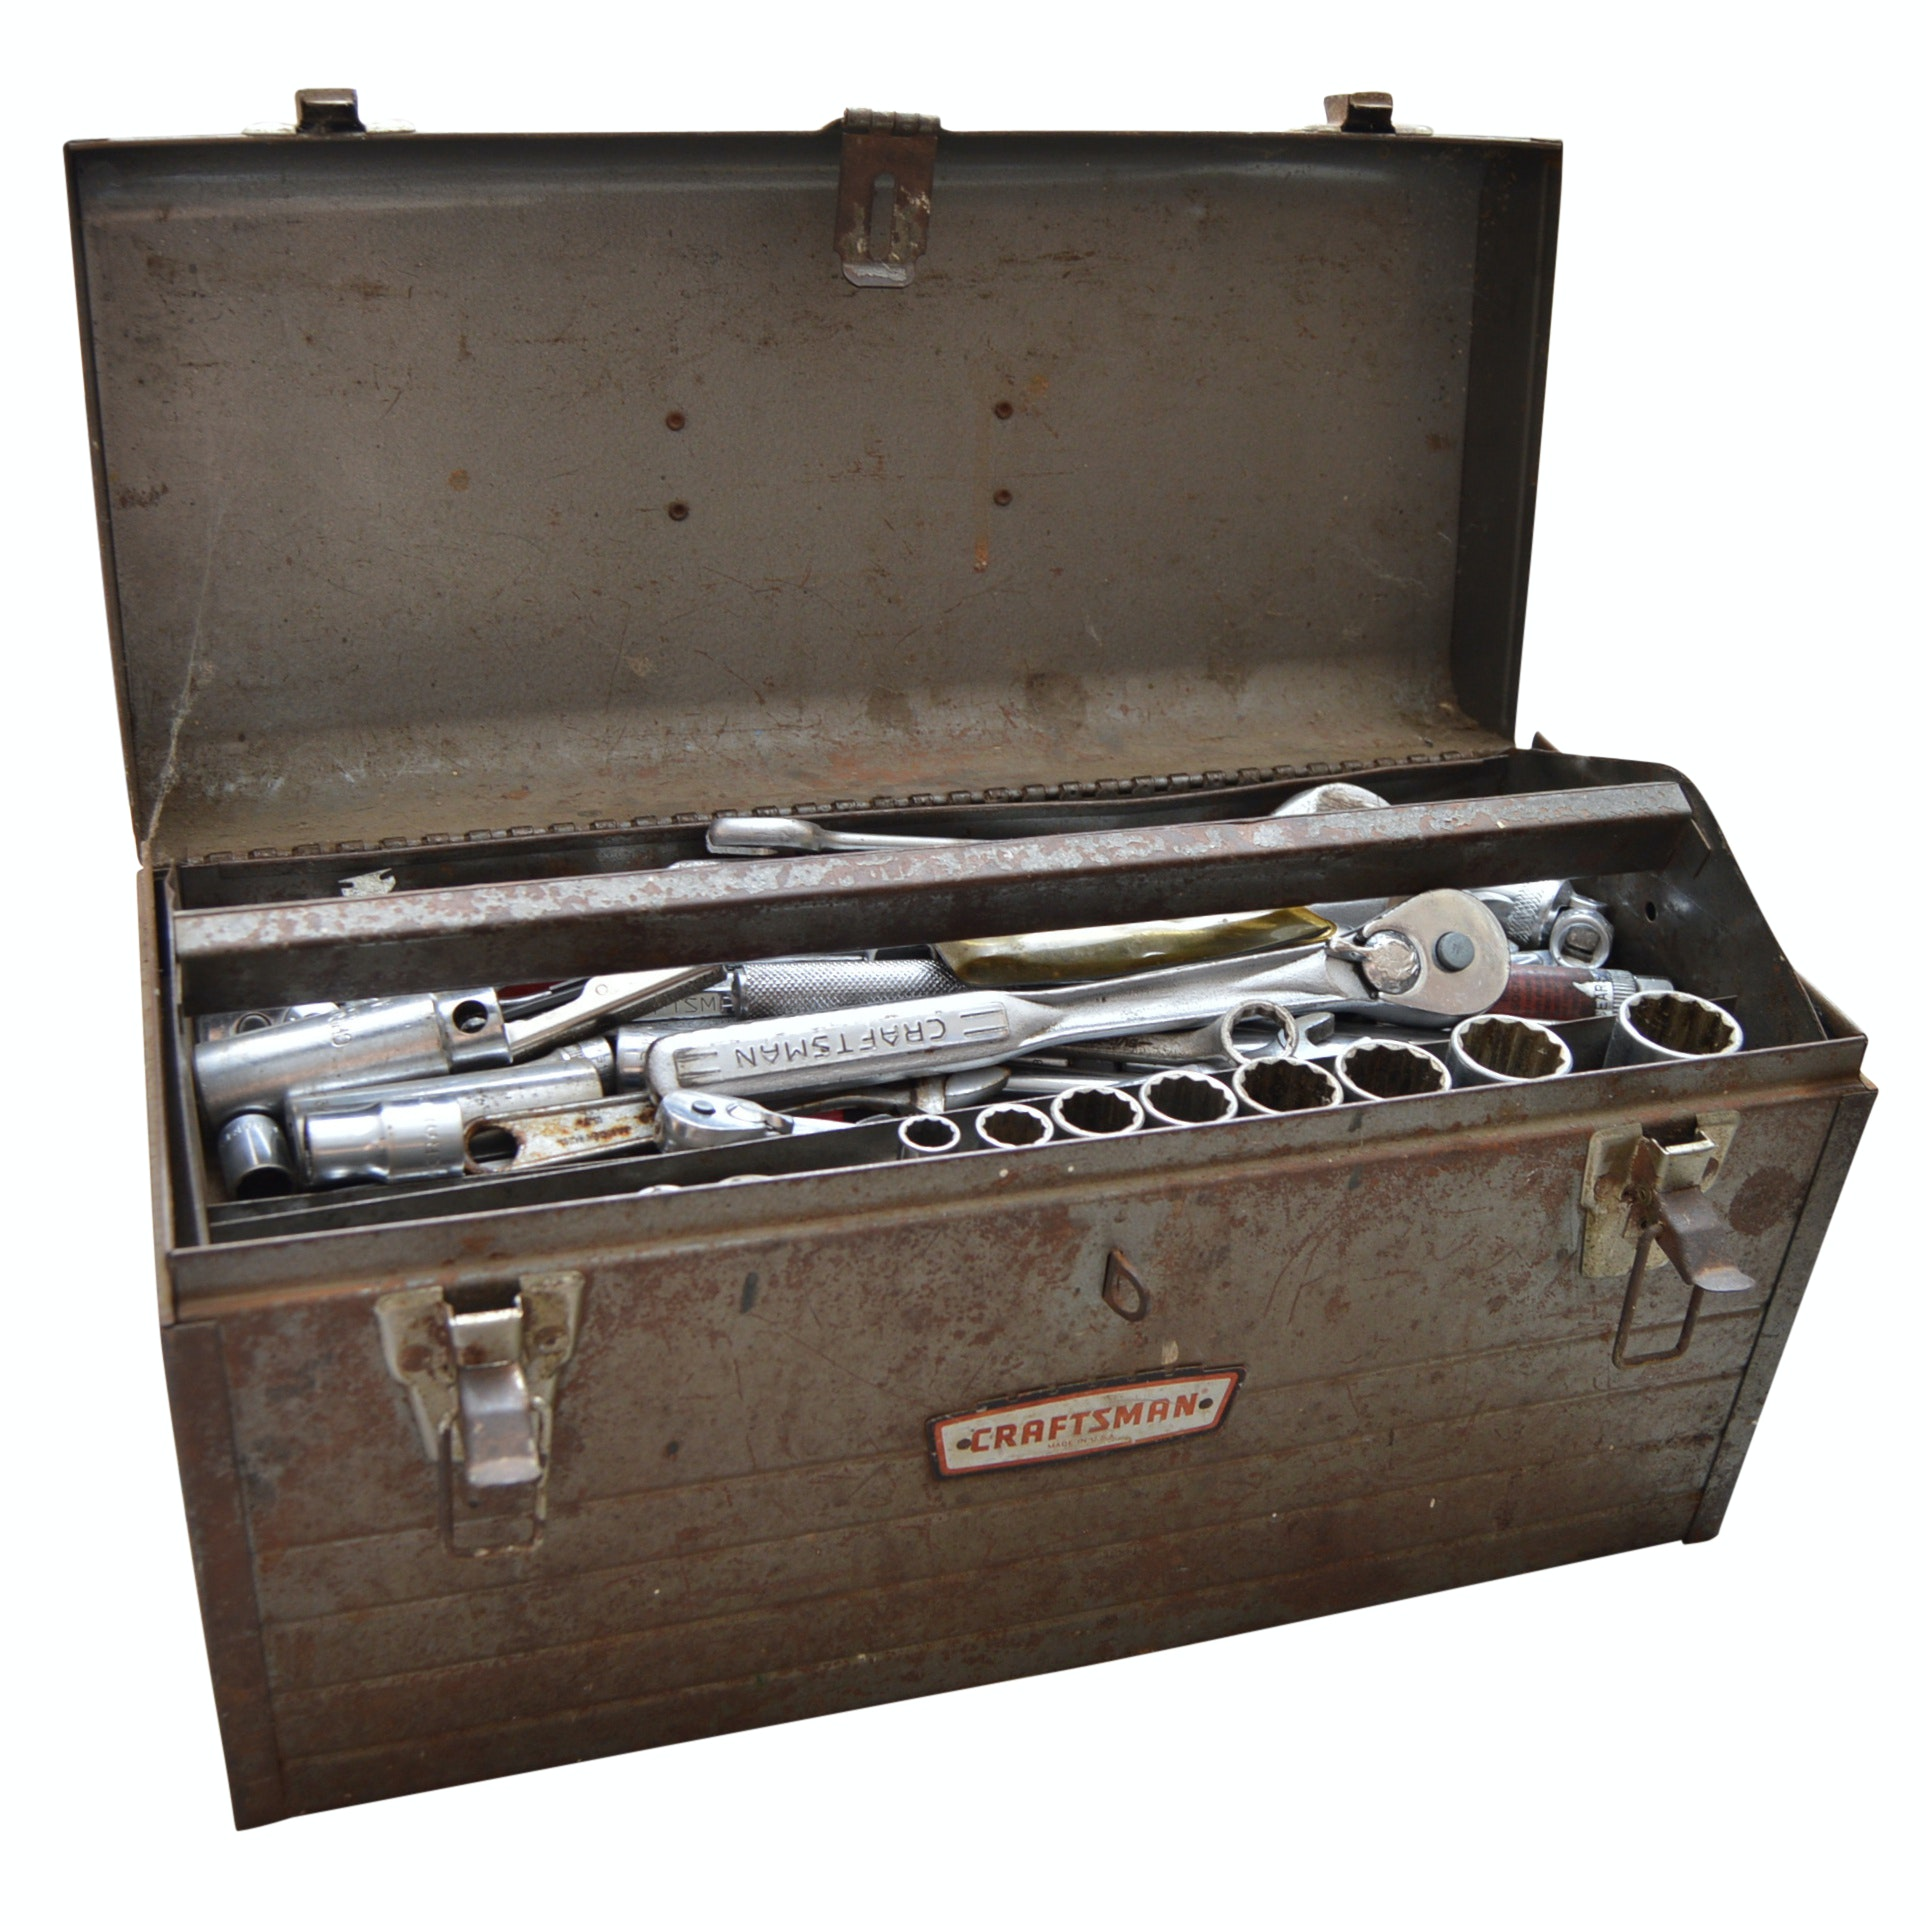 Craftsman Toolbox with Tools